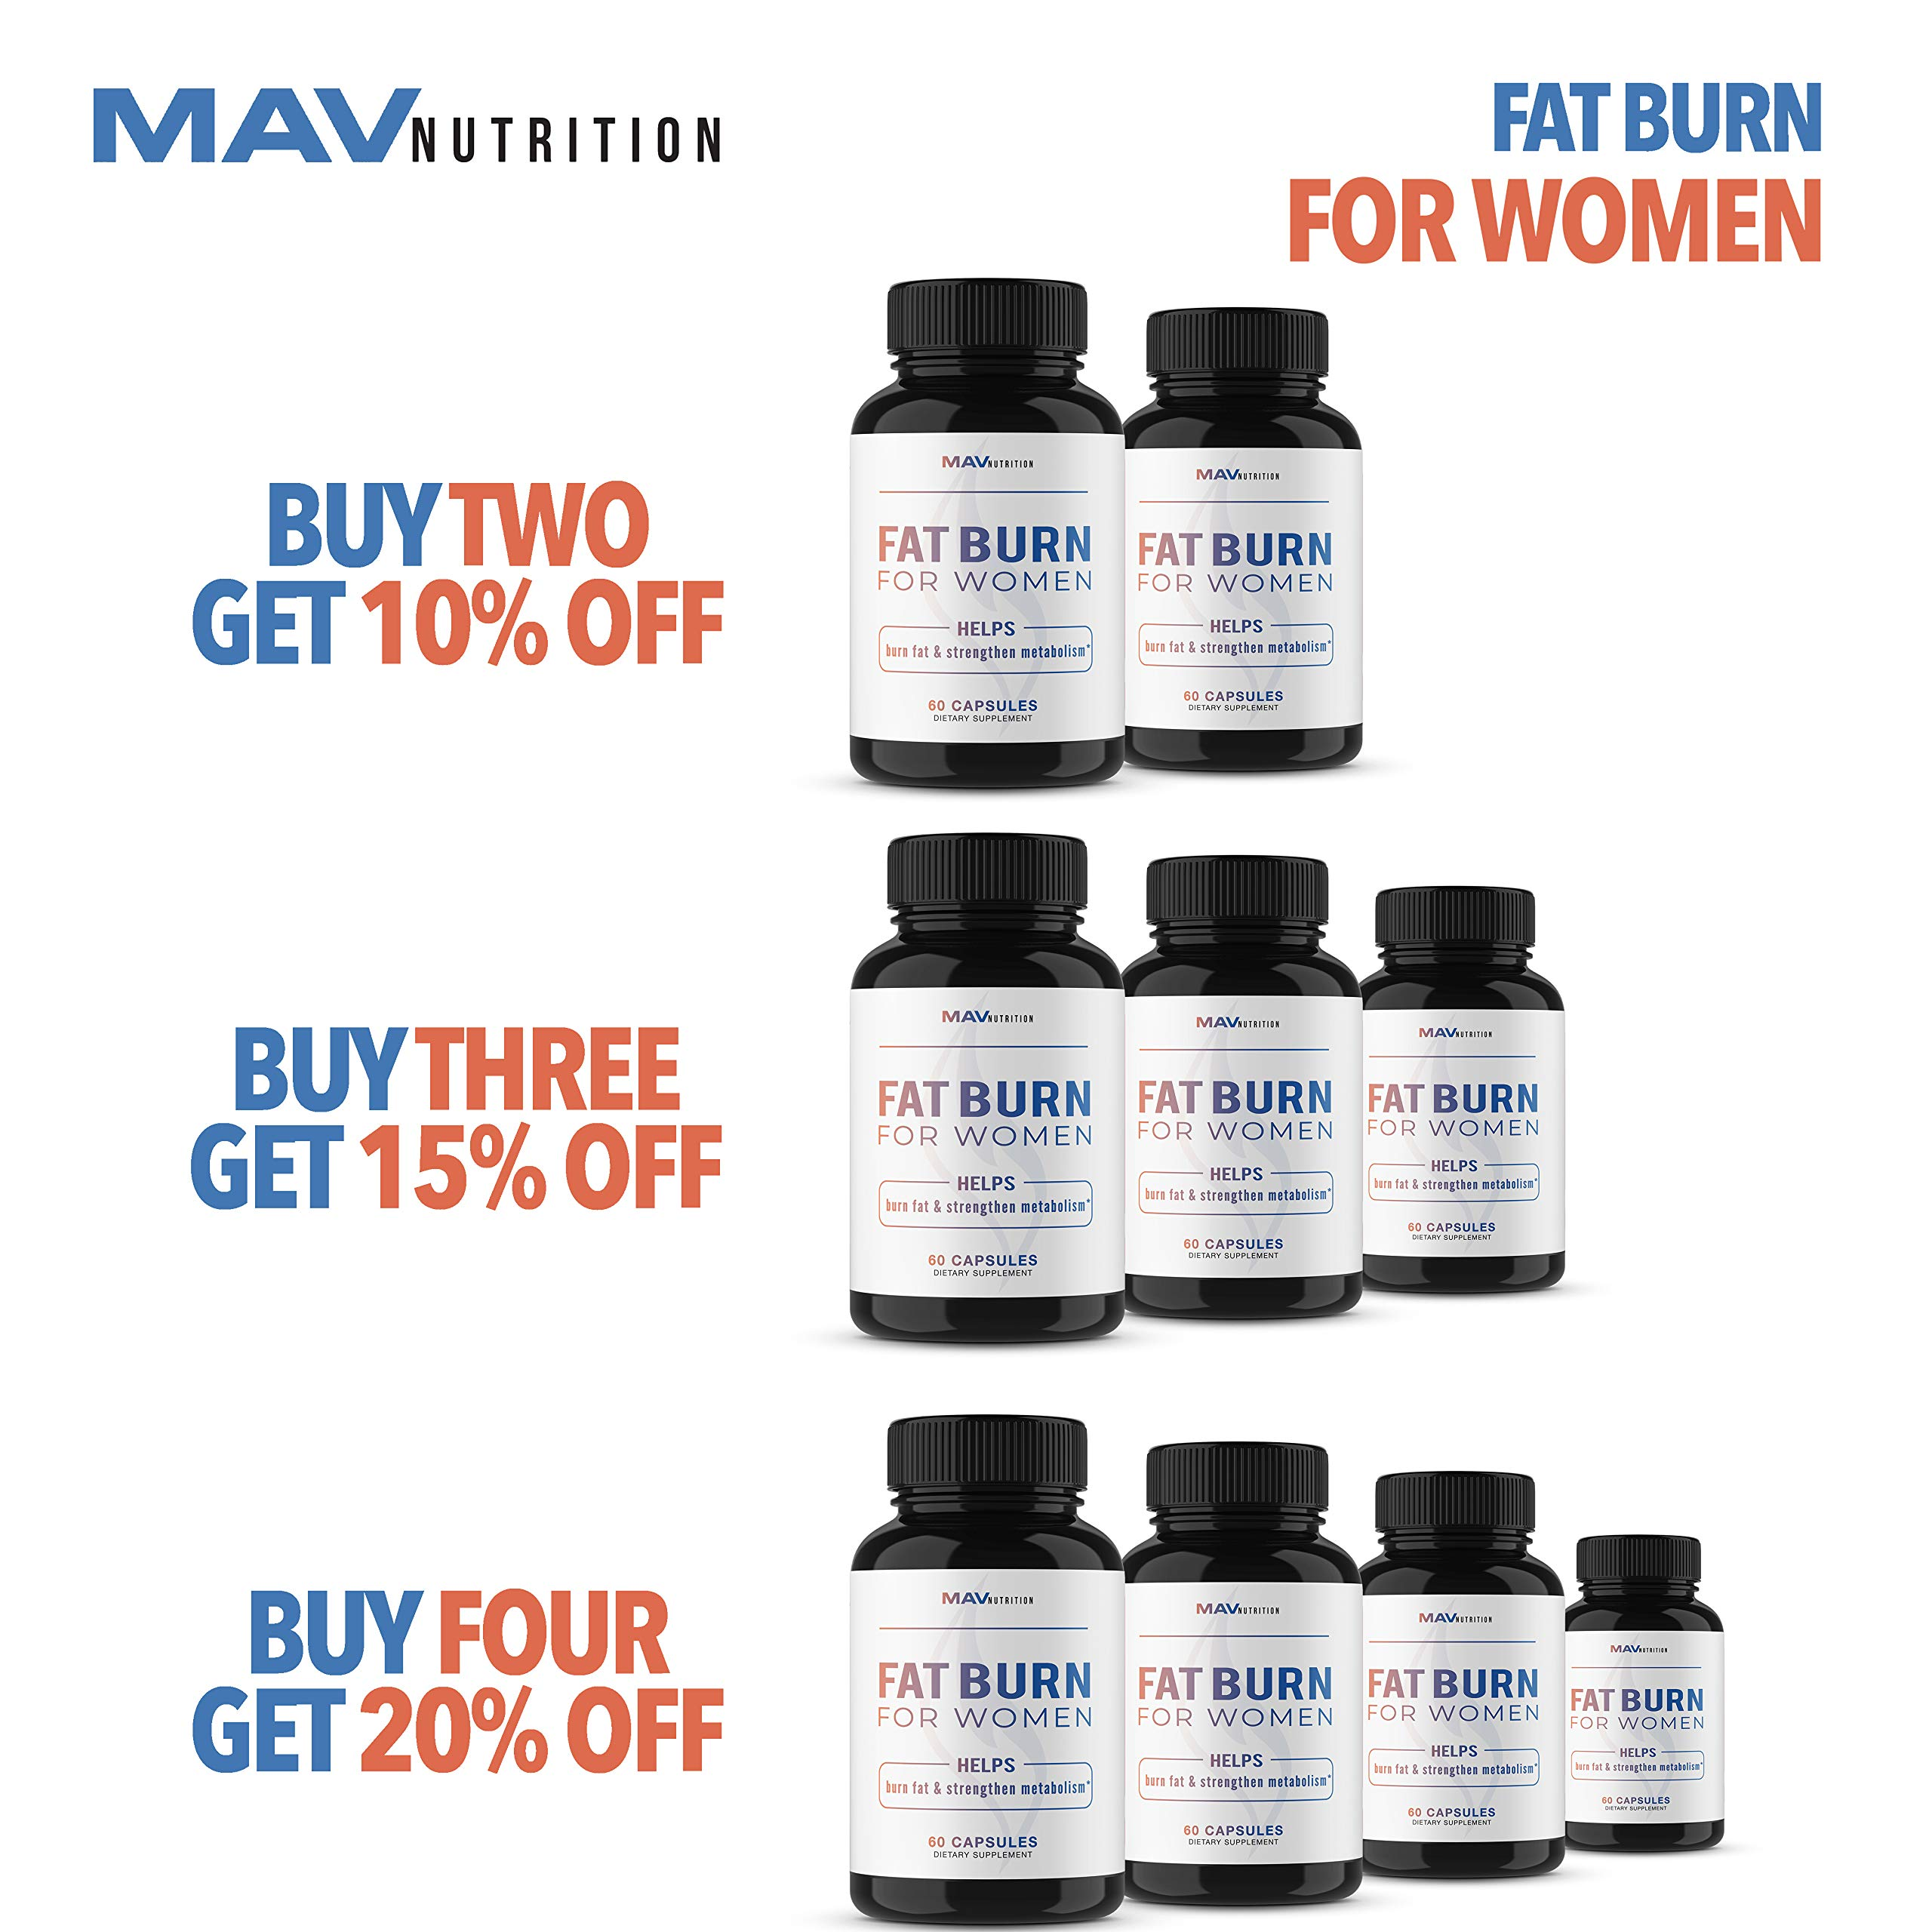 Womens Fat Burner Weight Loss Pills Designed for Increasing Healthy Metabolism, Supporting Energy Levels, Fat Loss, and Increasing Tone; Non-GMO, Gelatin-Free; 60 Vegetarian Capsules for Women by MAV NUTRITION (Image #5)